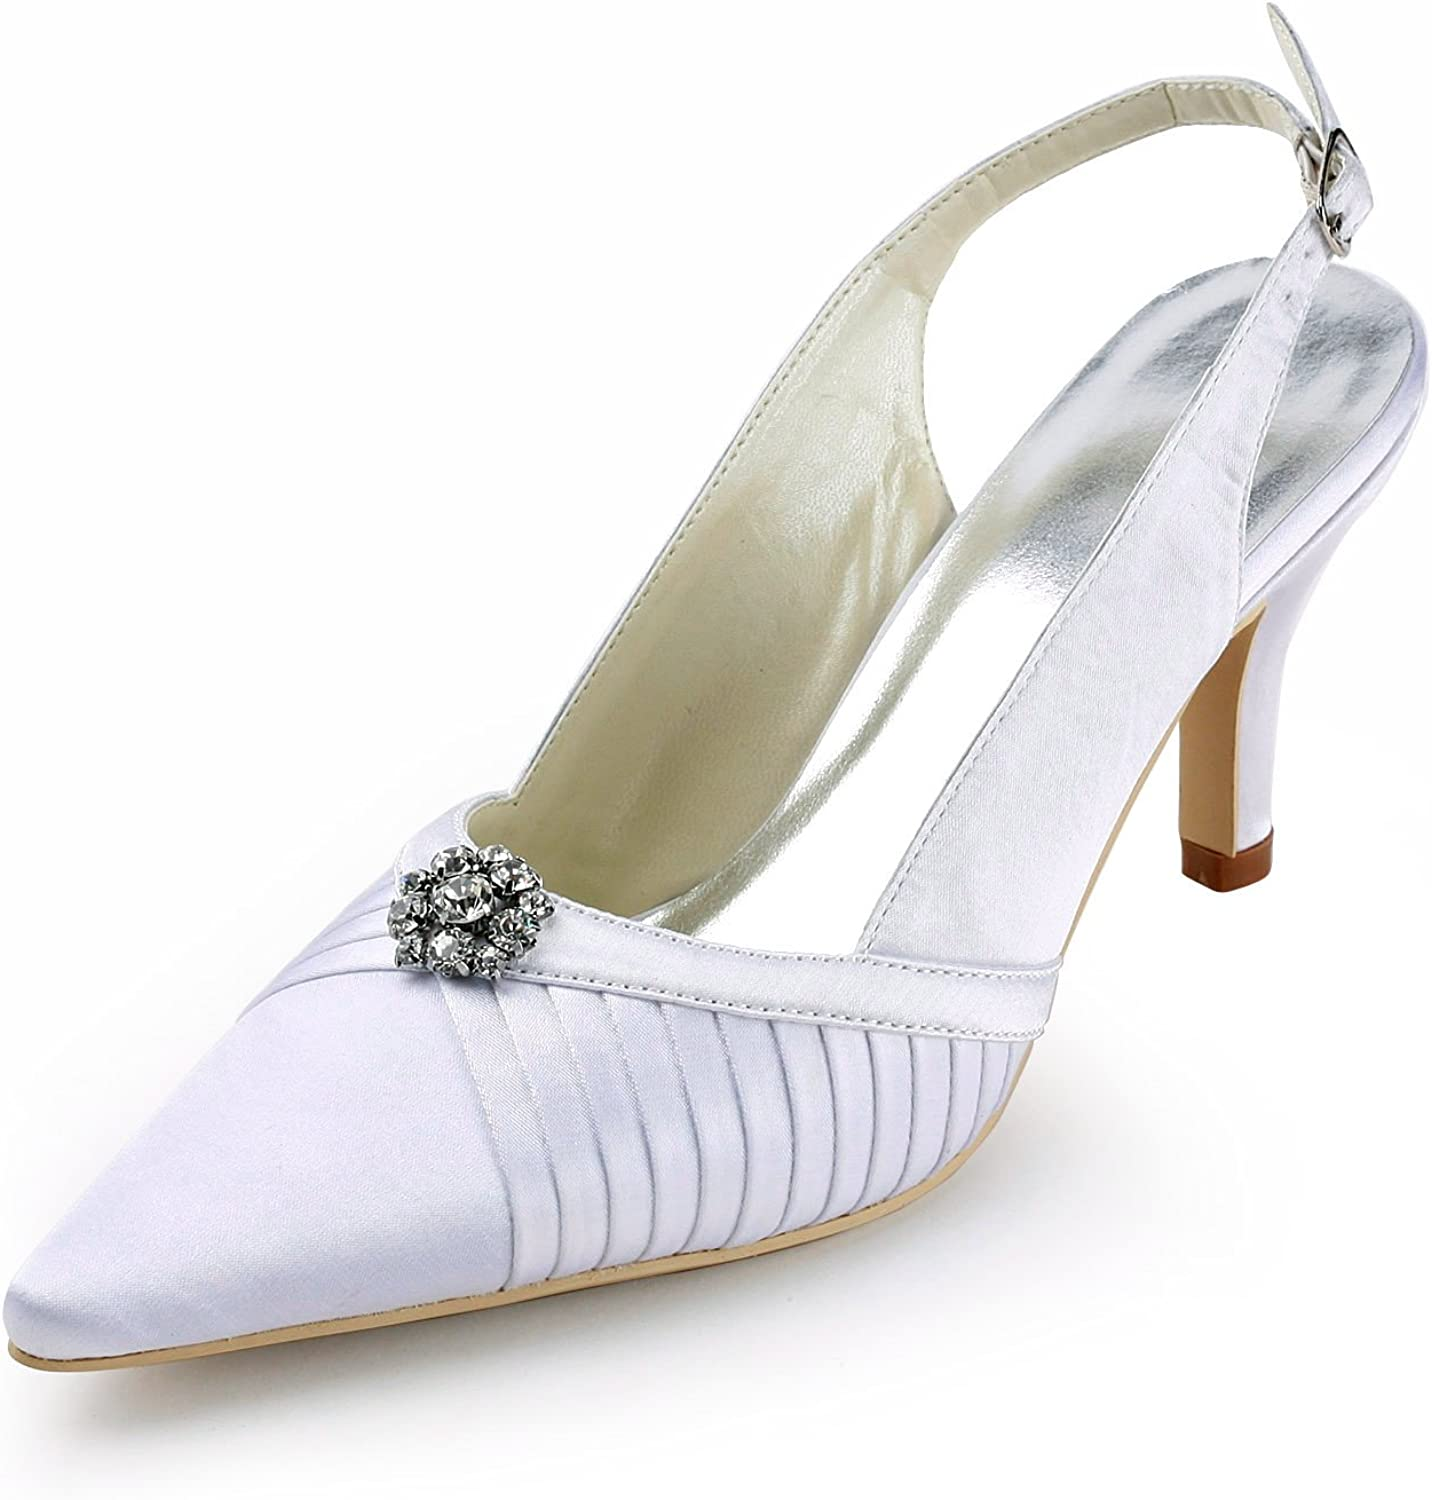 Zioso TMZ338 Women's Slingback Satin Bridal Wedding Evening Formal Party Pumps shoes